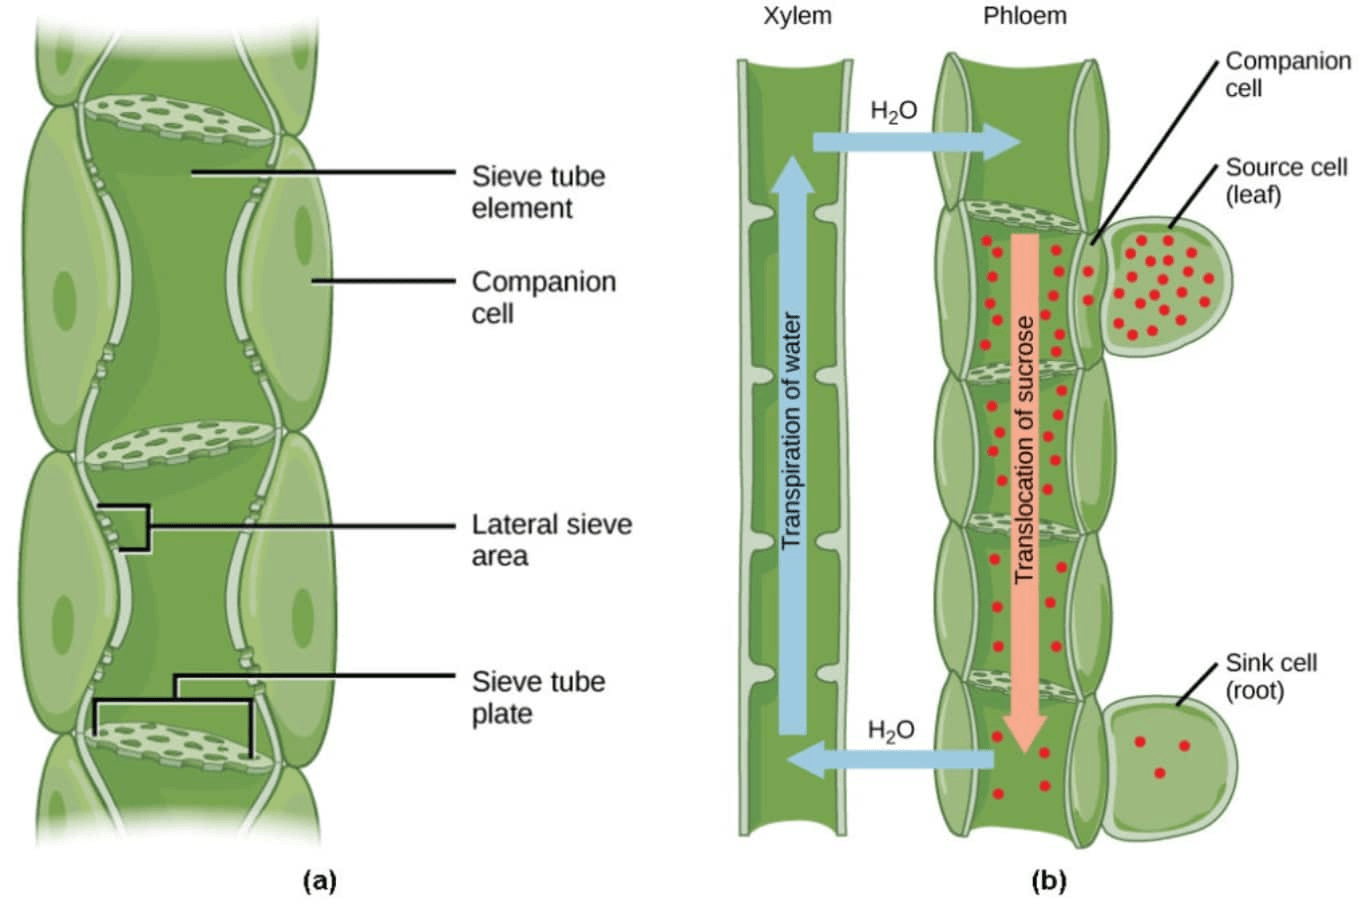 Difference Between Xylem And Phloem